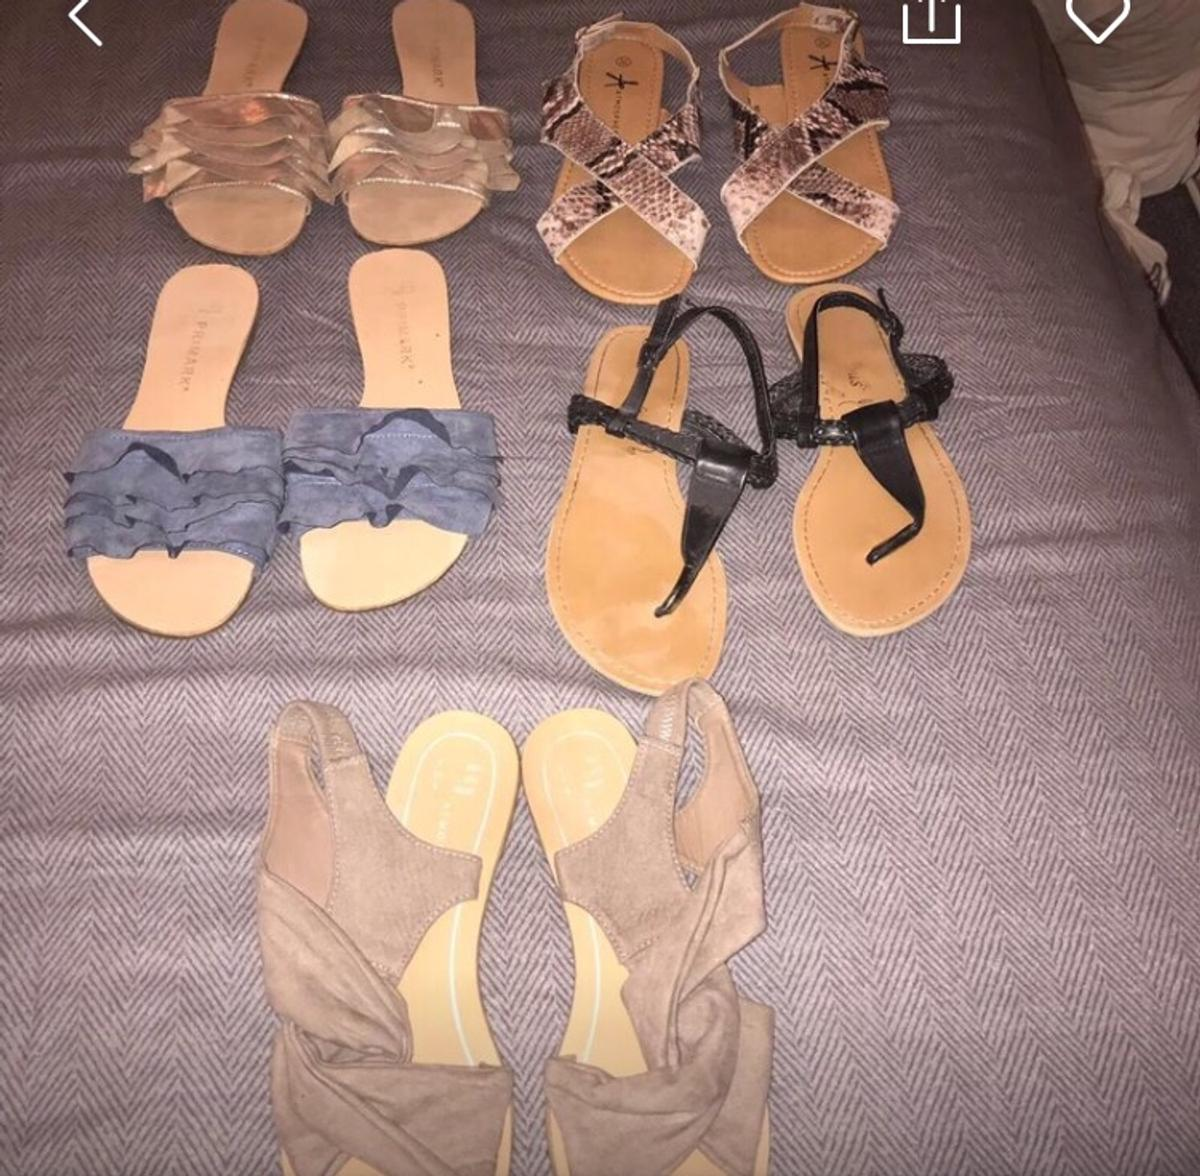 All size 6 good condition